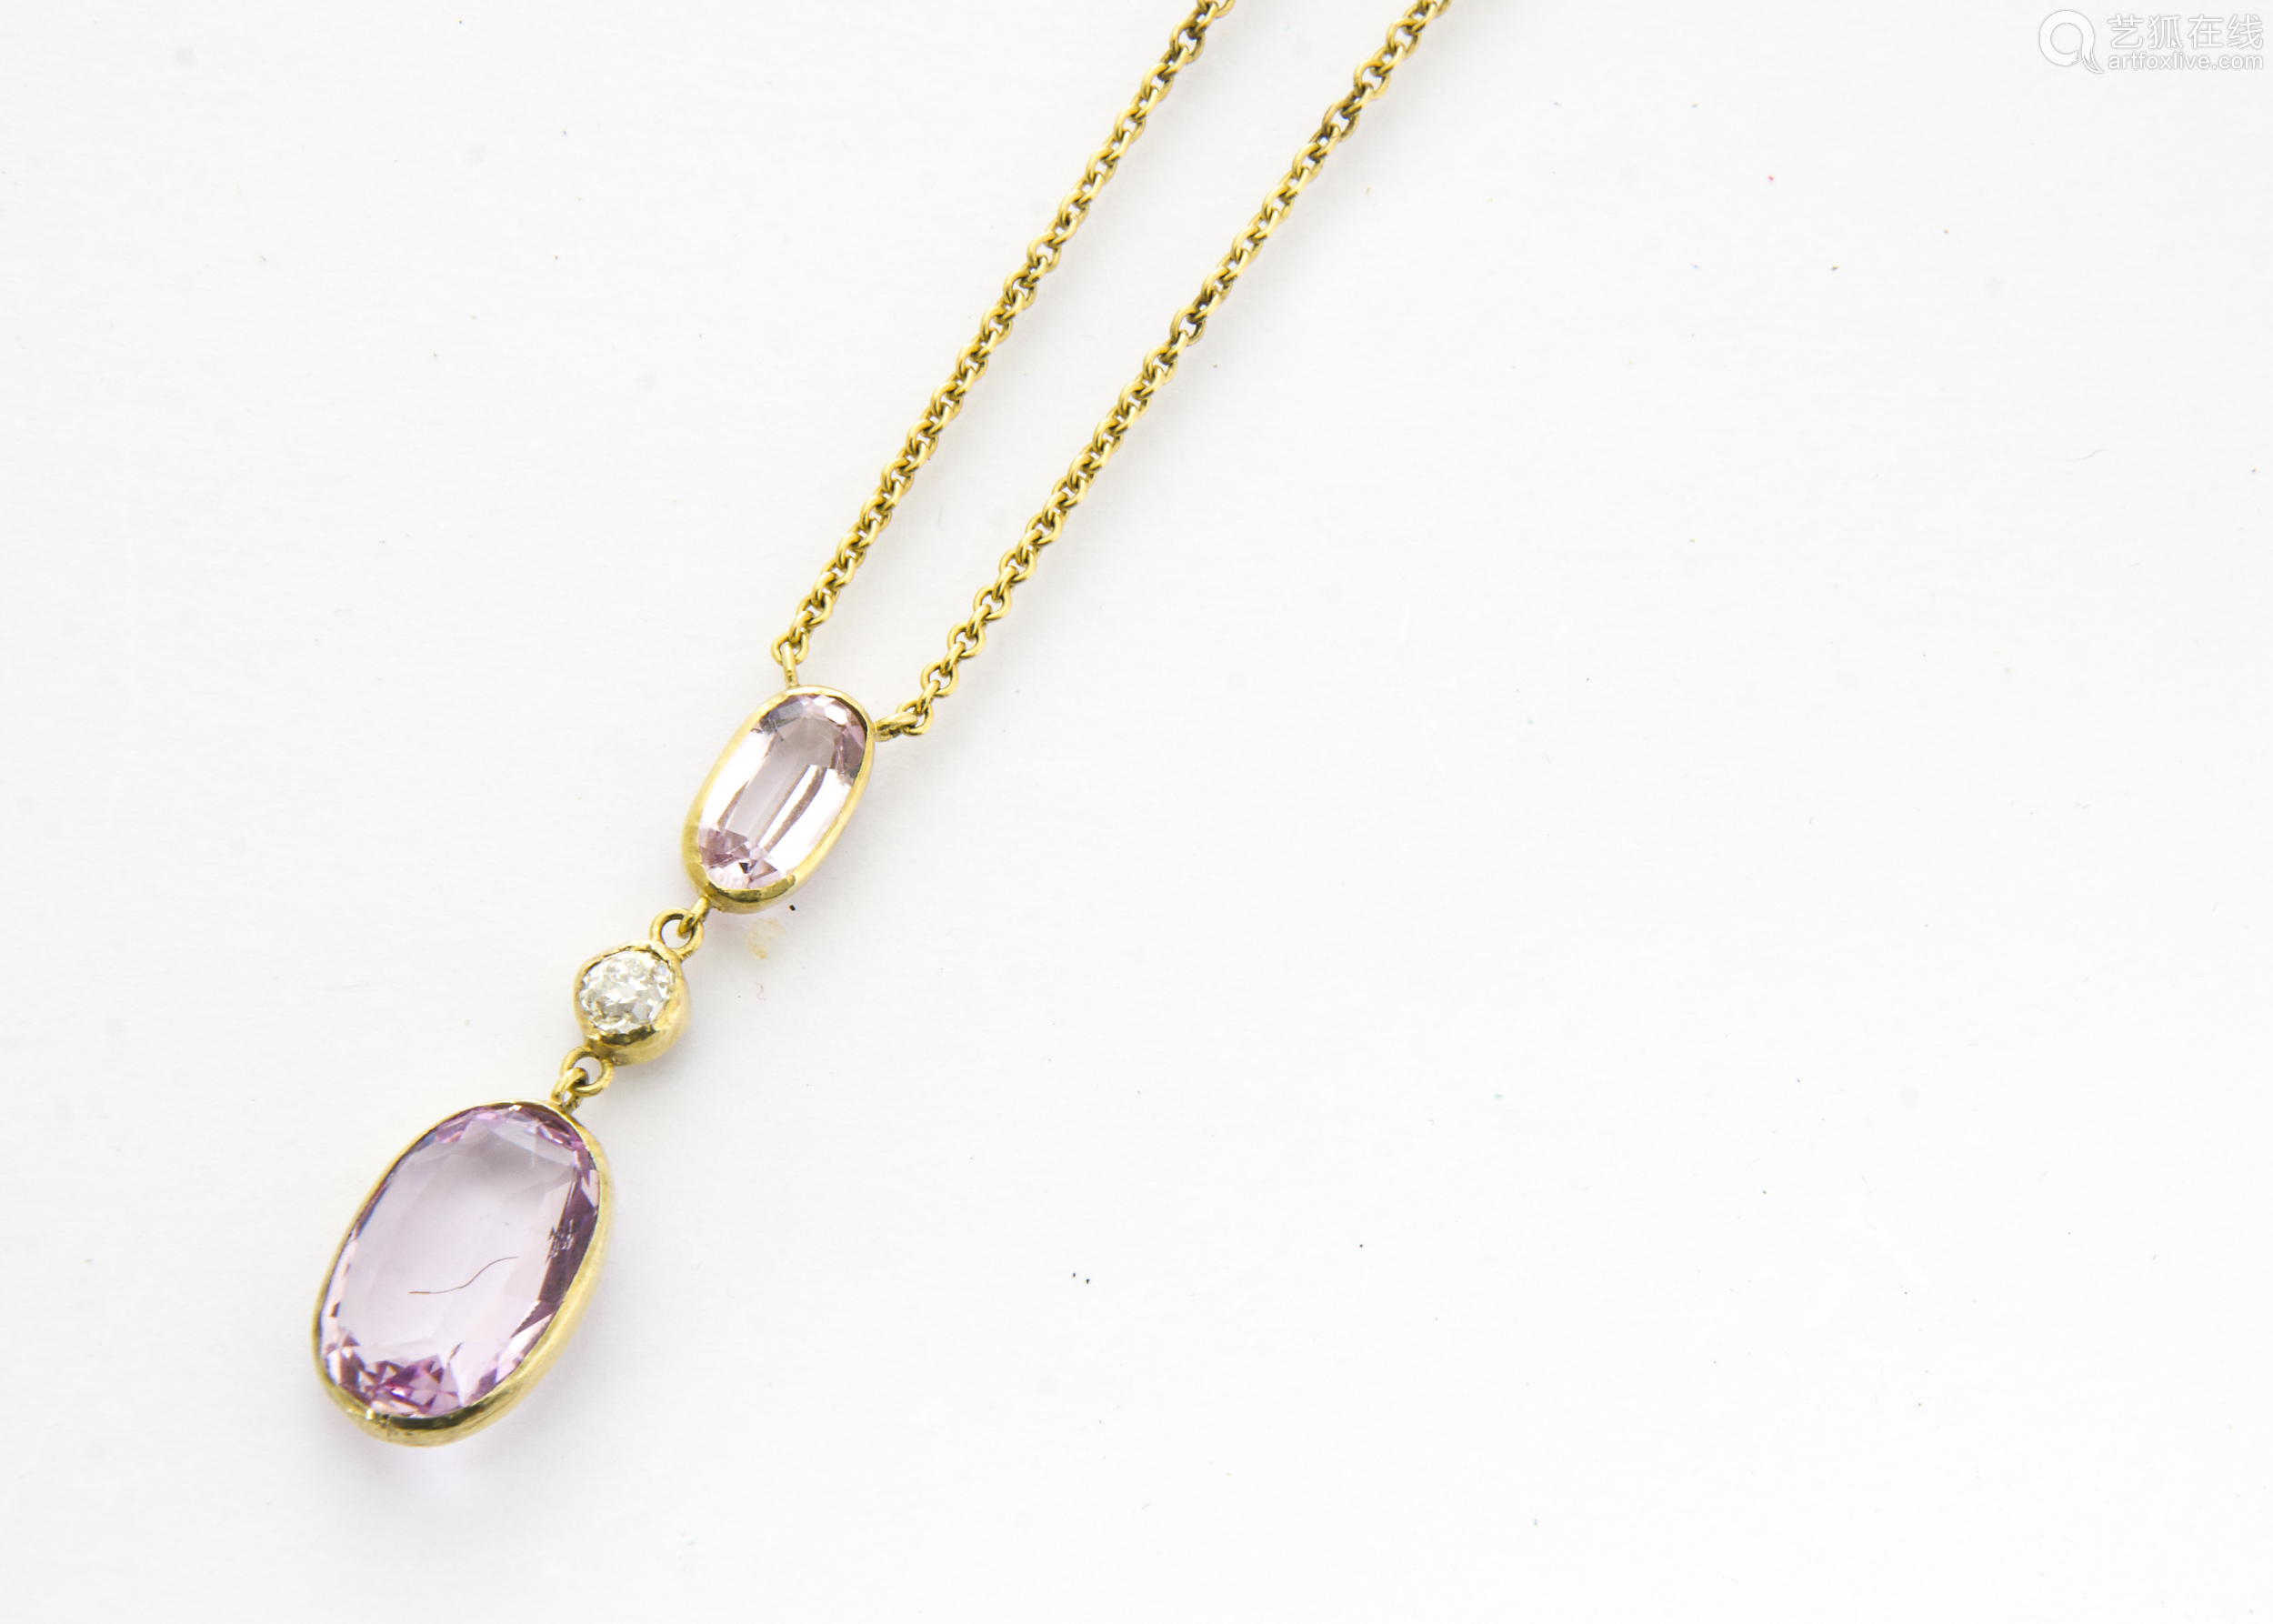 An Edwardian topaz and diamond drop pendant, the two oval pink mixed cut topaz stones in colette